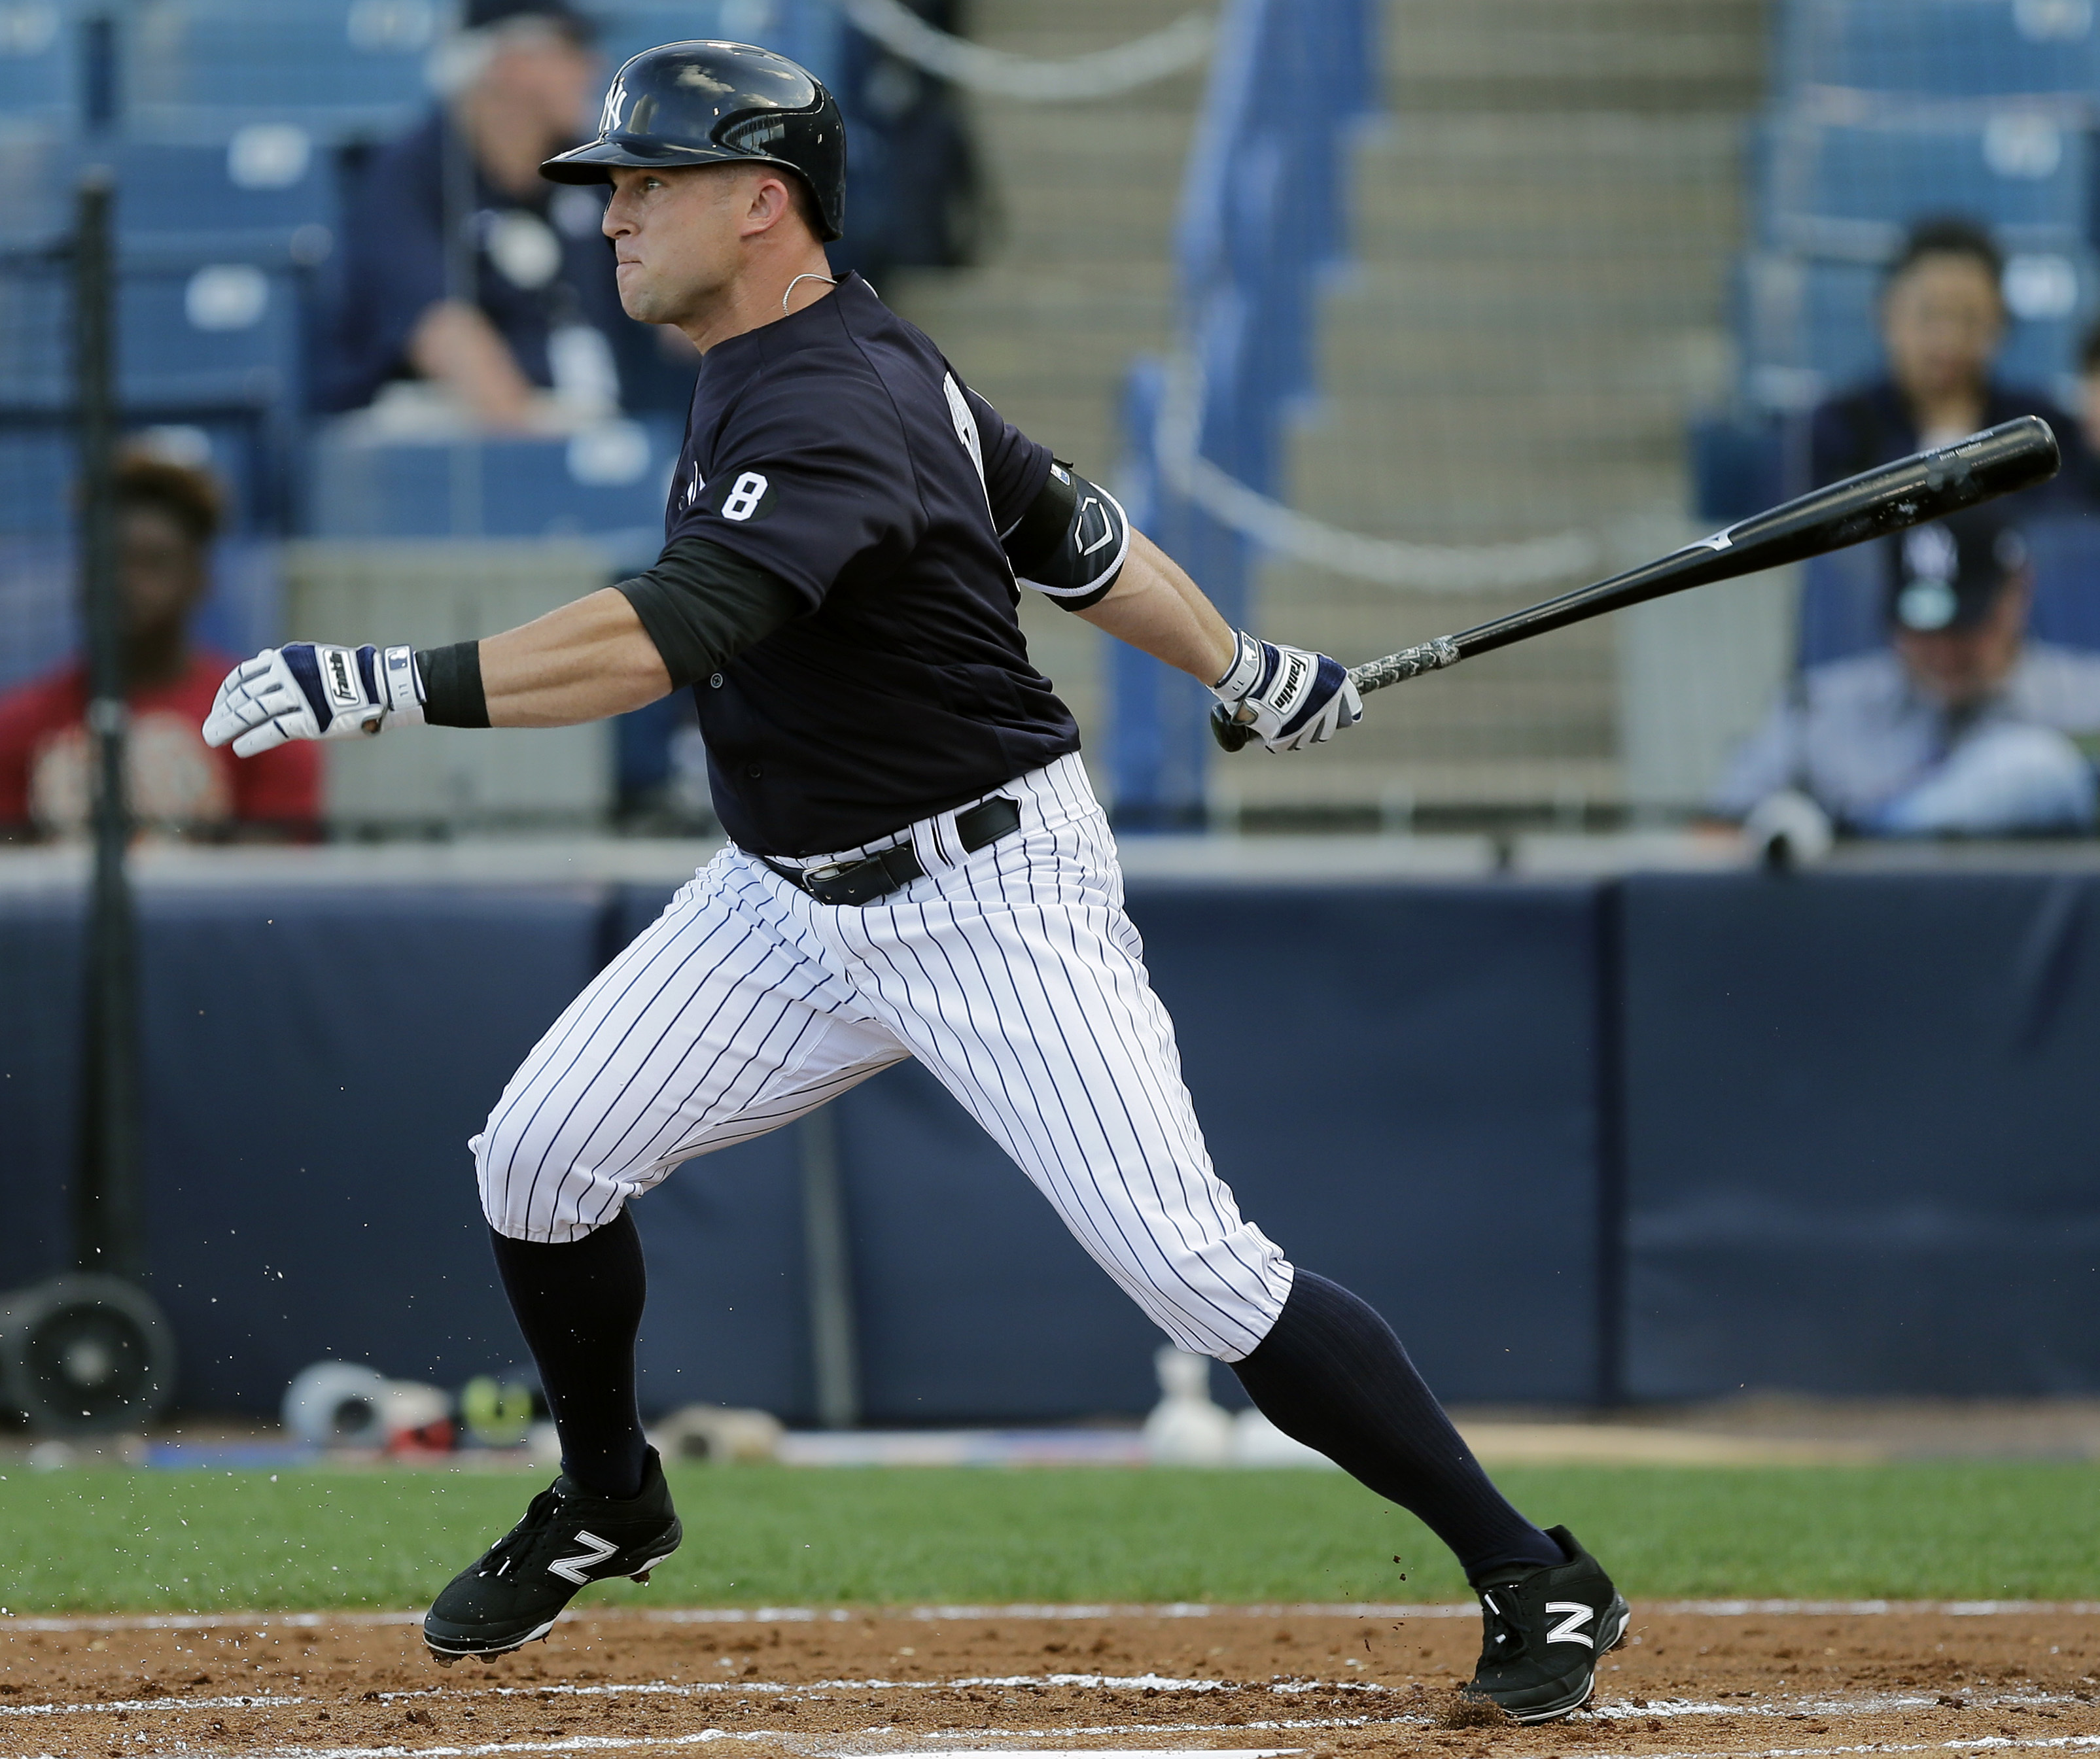 New York Yankees' Brett Gardner grounds out to Toronto Blue Jays second baseman Darwin Barney during the first inning of a spring training baseball game, Wednesday, March 16, 2016, in Tampa, Fla. Garner is making his spring debut. (AP Photo/Chris O'Meara)